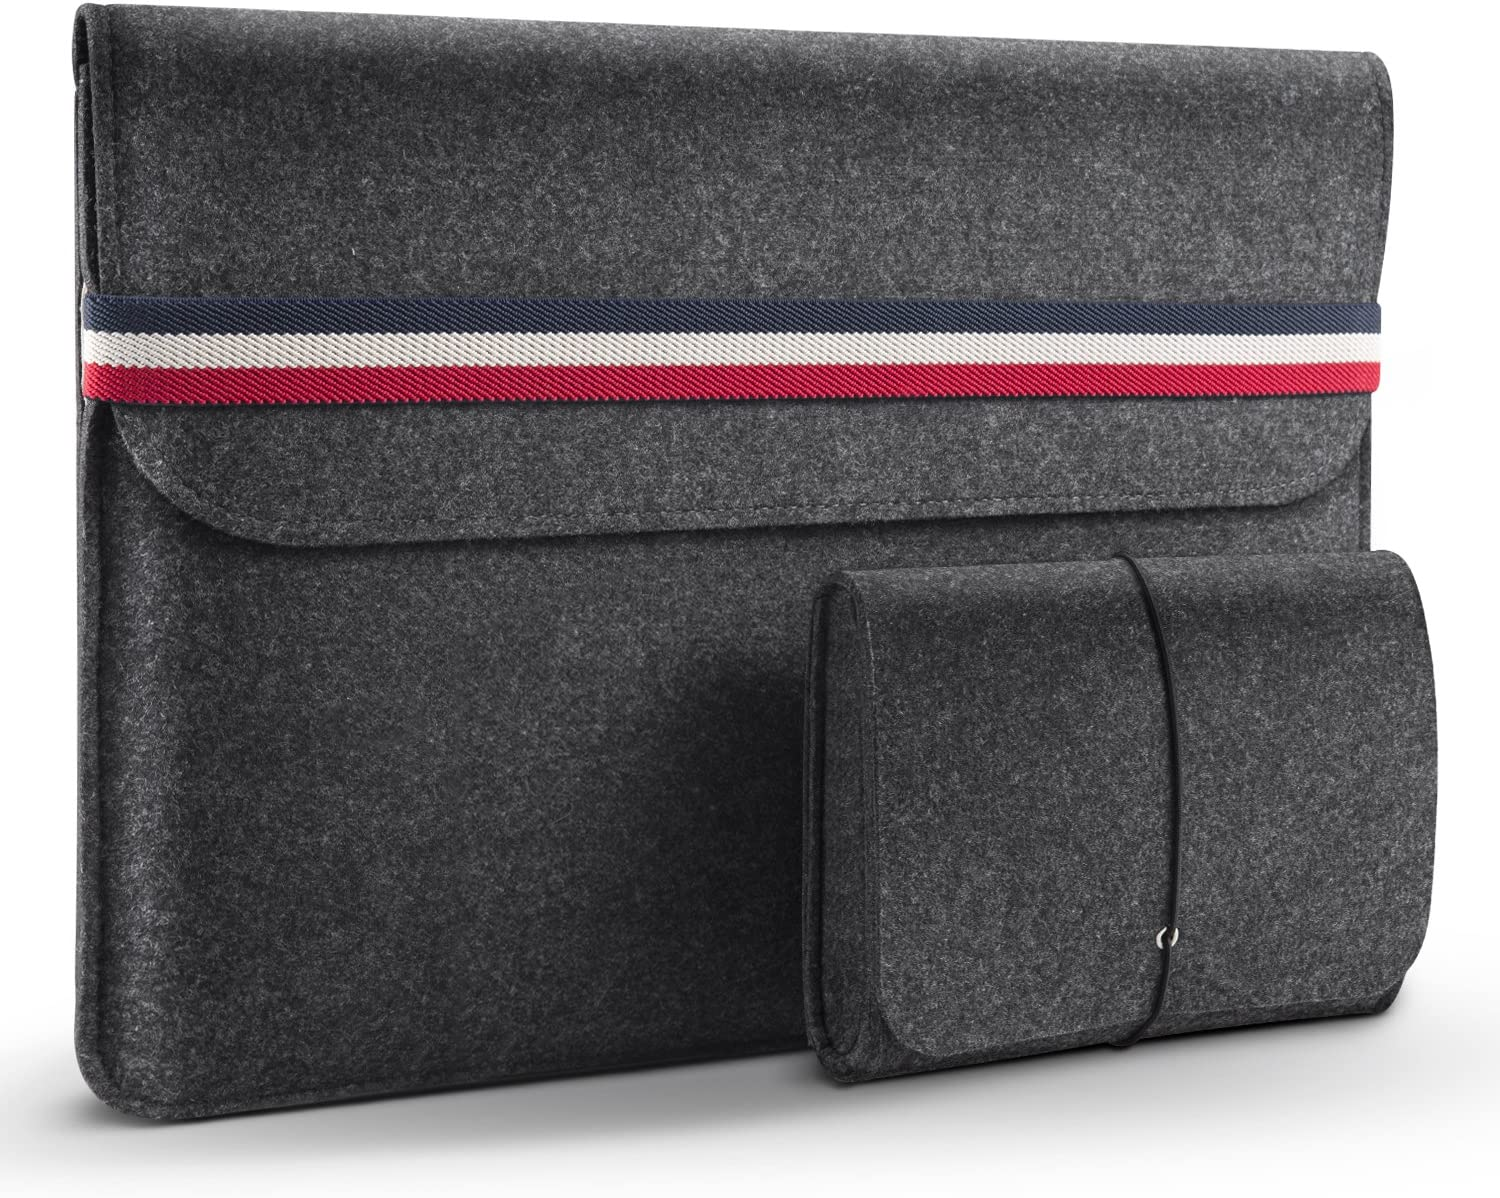 HOMIEE 15.6 Inch Laptop Sleeve Protective Case for 15.6 Inch HP Pavilion/Dell/Asus/Thinkpad and 15.6 Inch Ultra Slim Laptops Notebooks, Shockproof Laptop Bag, LS1503B, Dark Gray